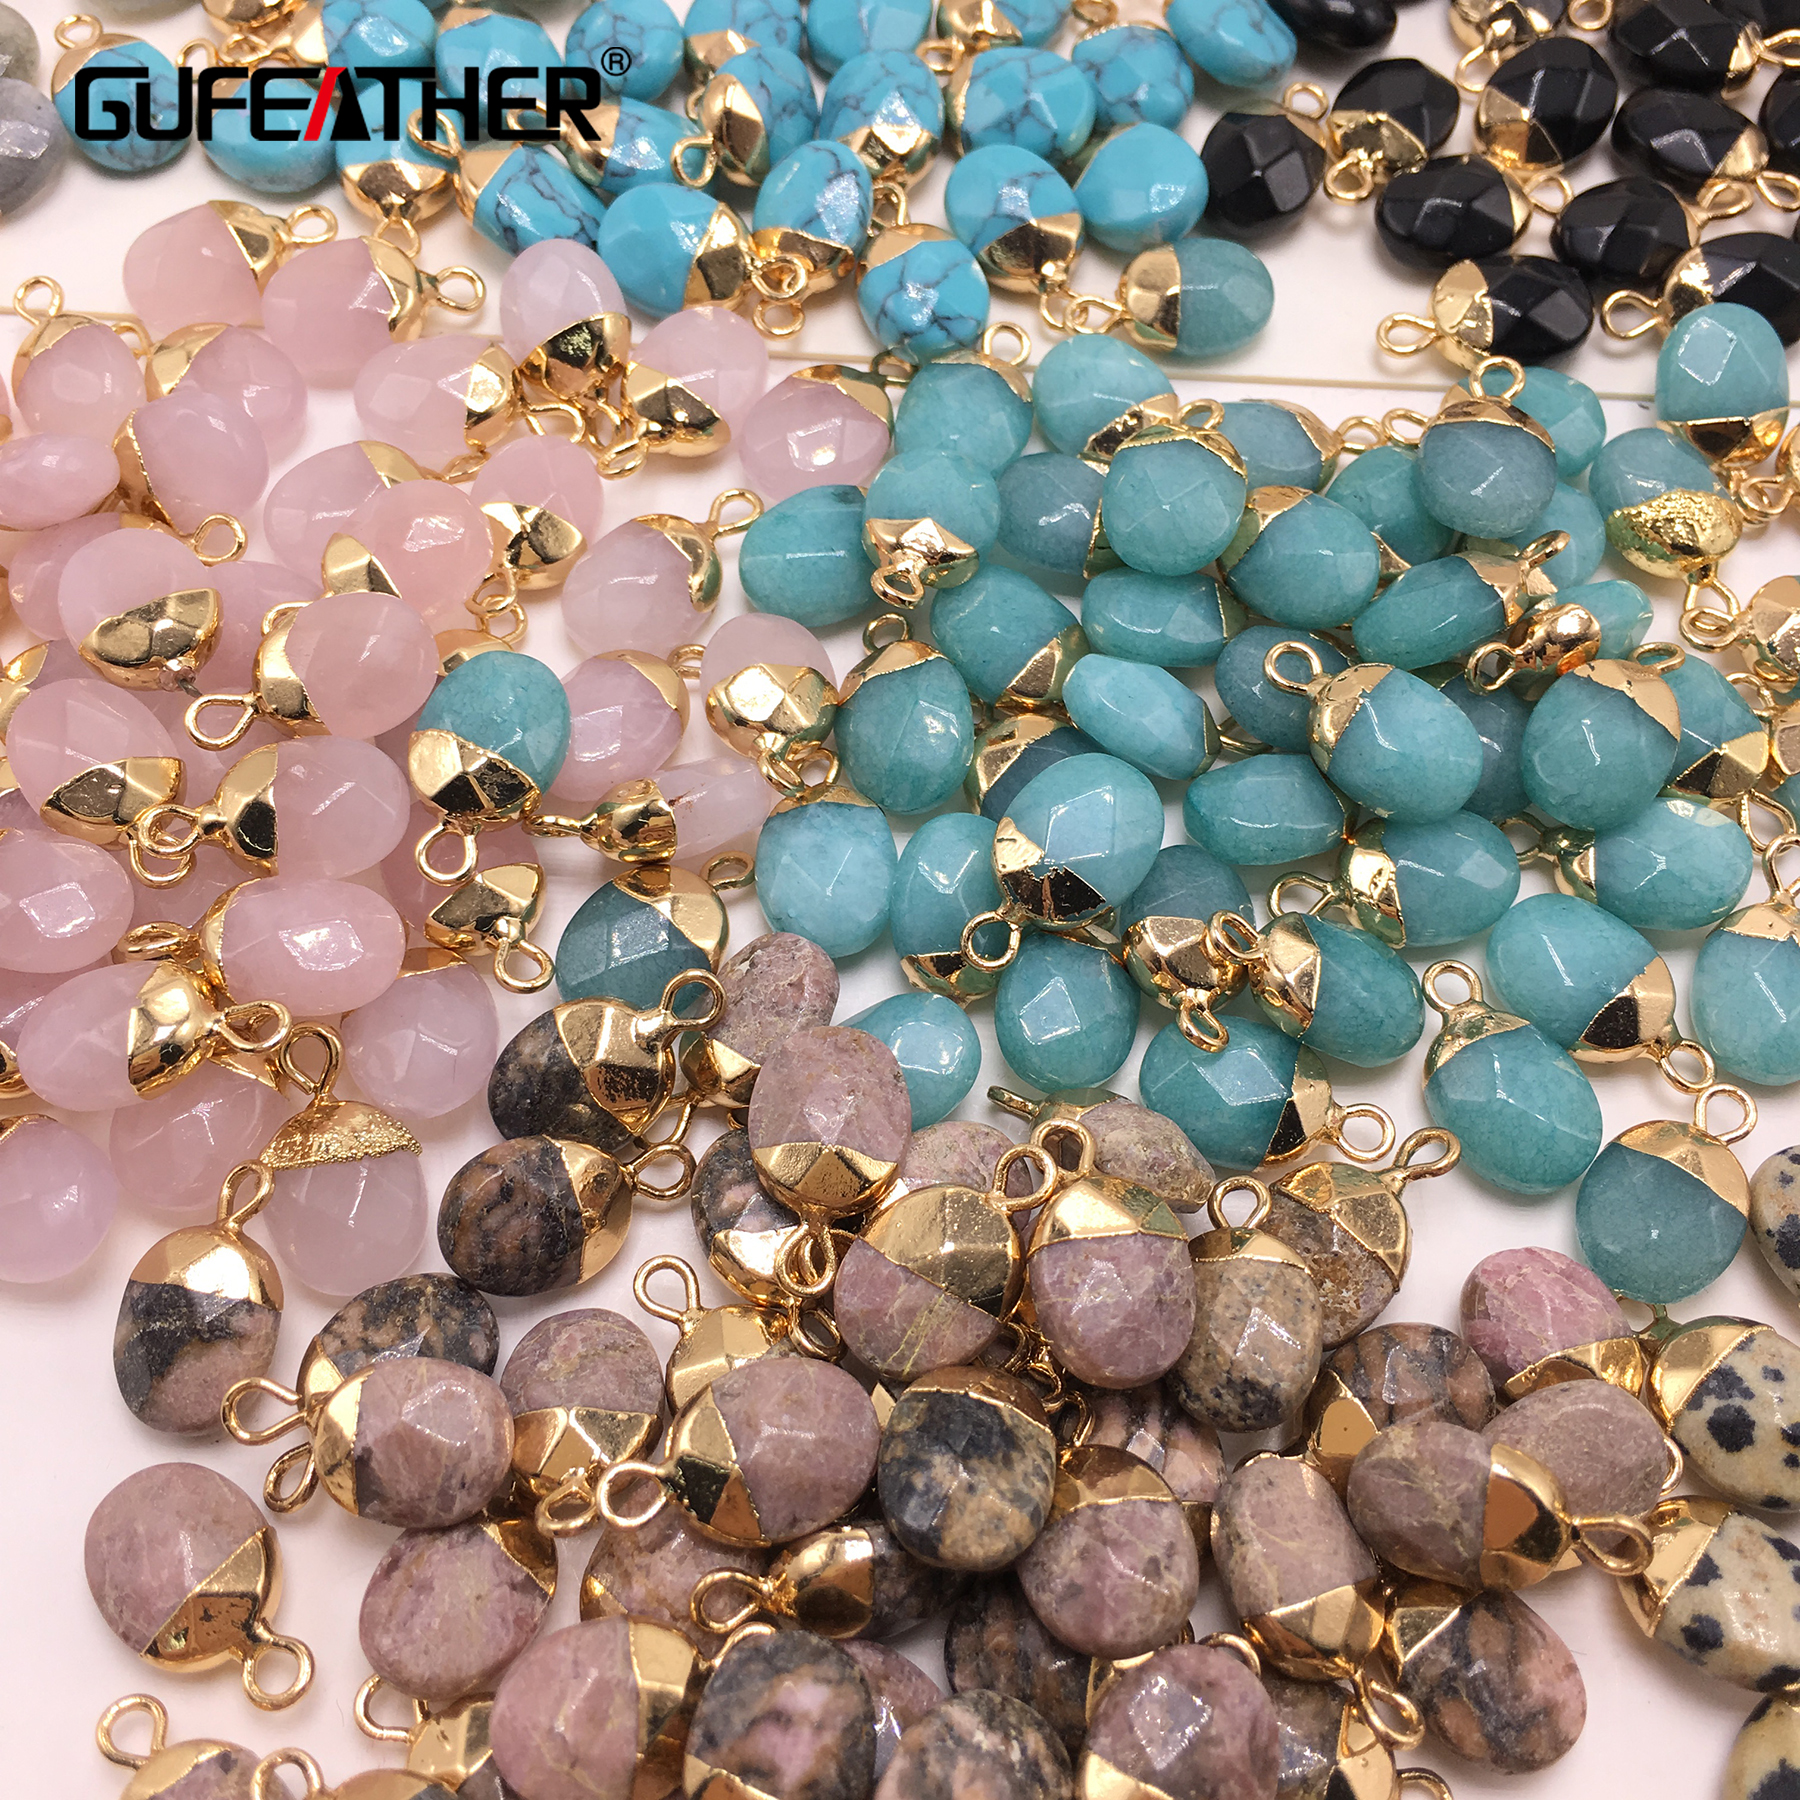 GUFEATHER M296,jewelry Accessories,jewelry Findings,accessory Parts,natural Stone,diy Pendant,hand Made,charms,jewelry Making